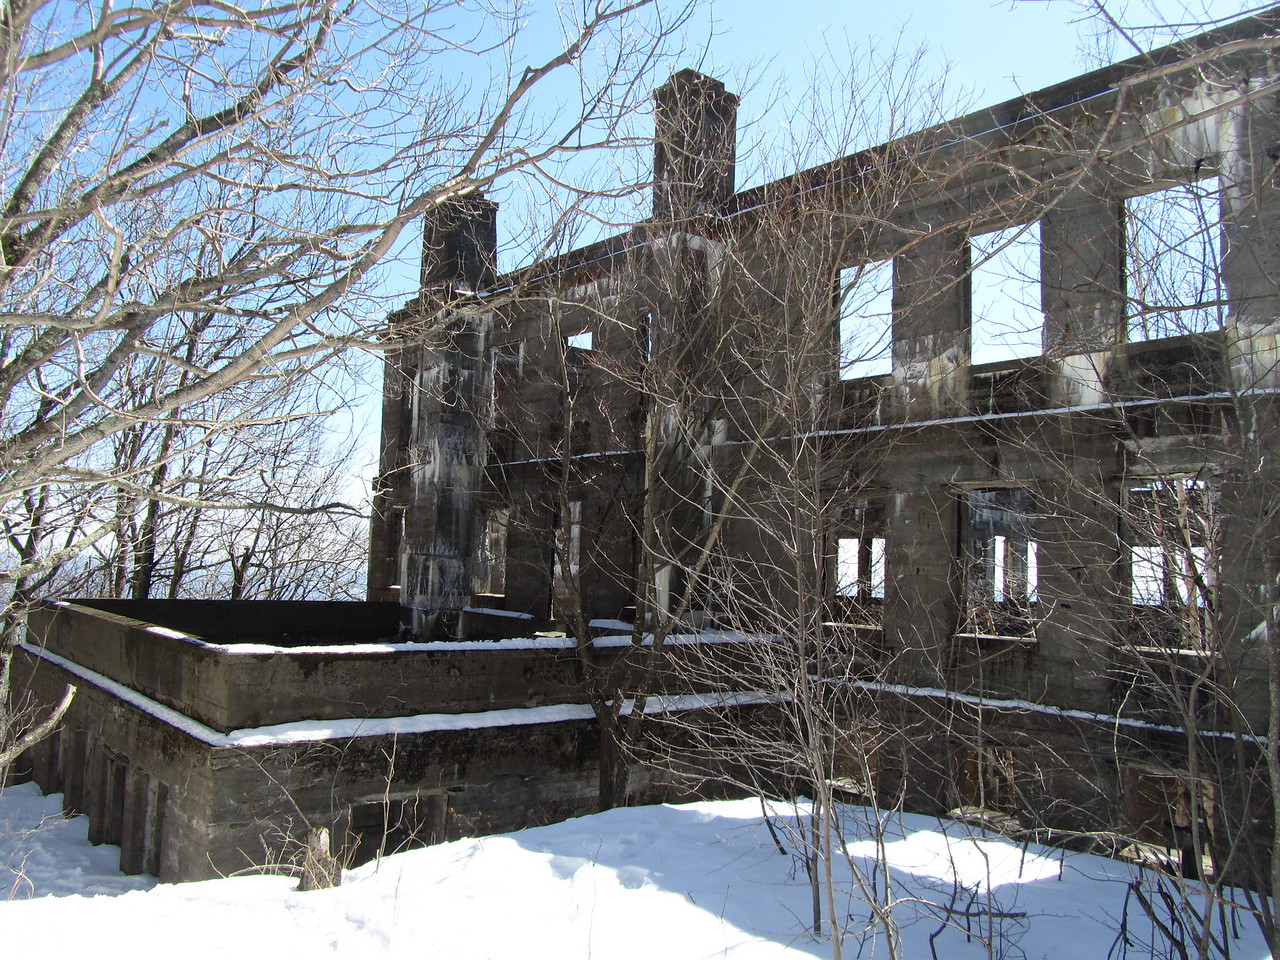 """I'm guessing this room off to the side was the ballroom. This site has some good information about the old hotel.<br /> <br />  <a href=""""http://www.hudsonvalleyruins.org/yasinsac/overlook/overlook.html"""">http://www.hudsonvalleyruins.org/yasinsac/overlook/overlook.html</a>"""